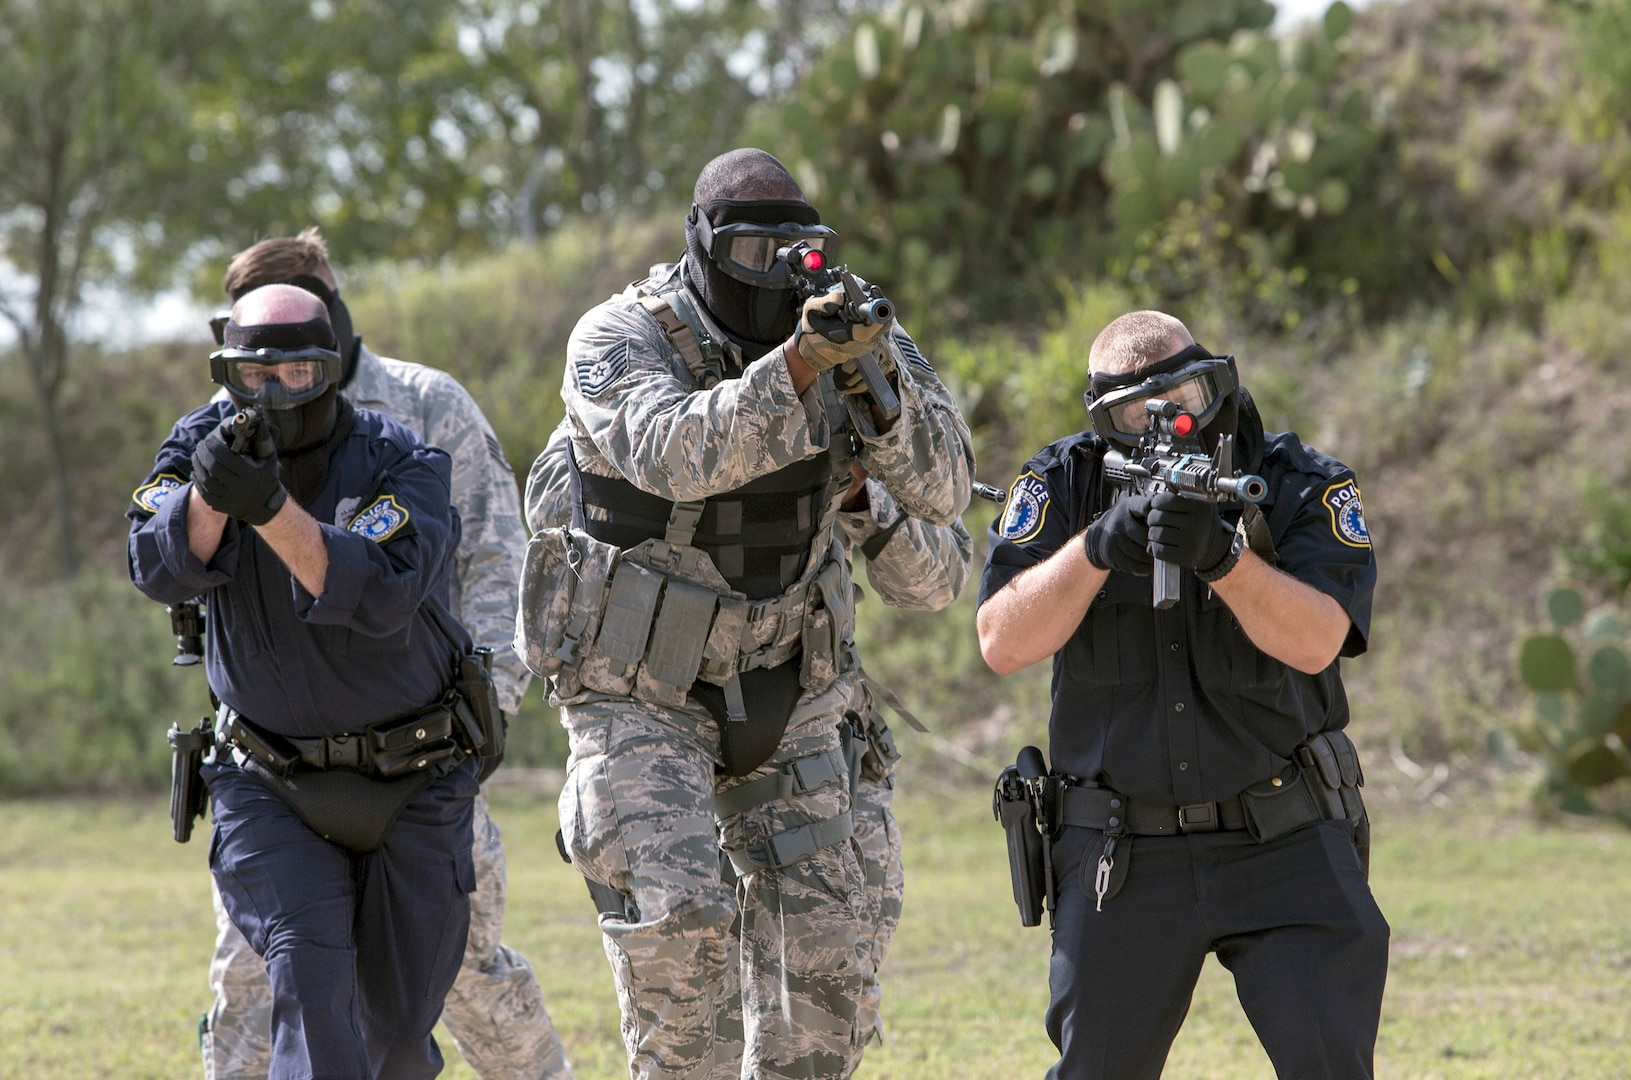 Members of the 902nd Security Forces Squadron prepare to assault in a file formation during a barricaded suspect exercise Nov. 10 at Joint Base San Antonio-Randolph's Camp Talon. Security forces members exchanged simulated munitions fire with hostiles throughout the exercise, bringing more realism while practicing assault force maneuvers during the exercise scenario. (U.S. Air Force photo by Johnny Saldivar)